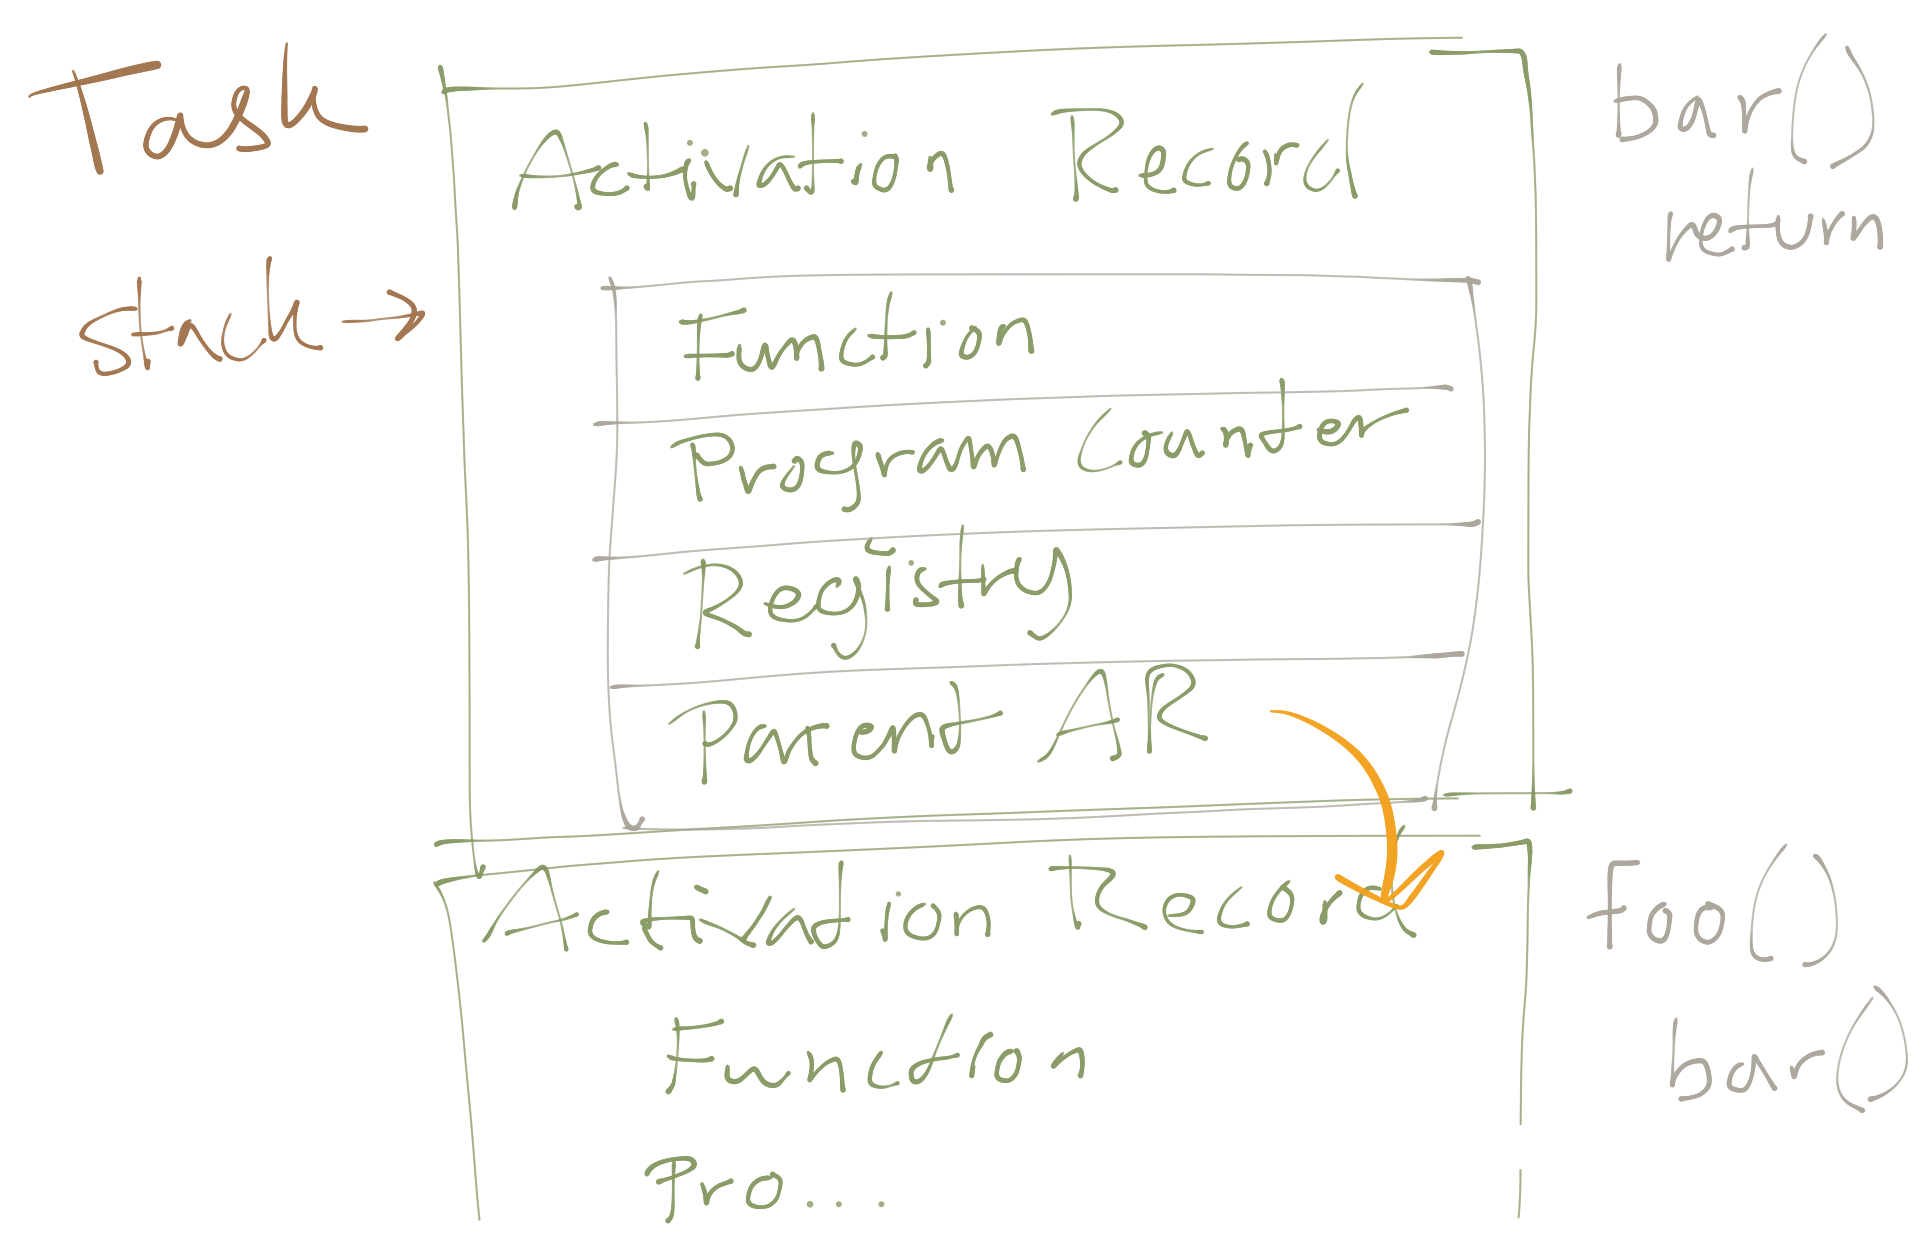 Sketch of a task and its activation records